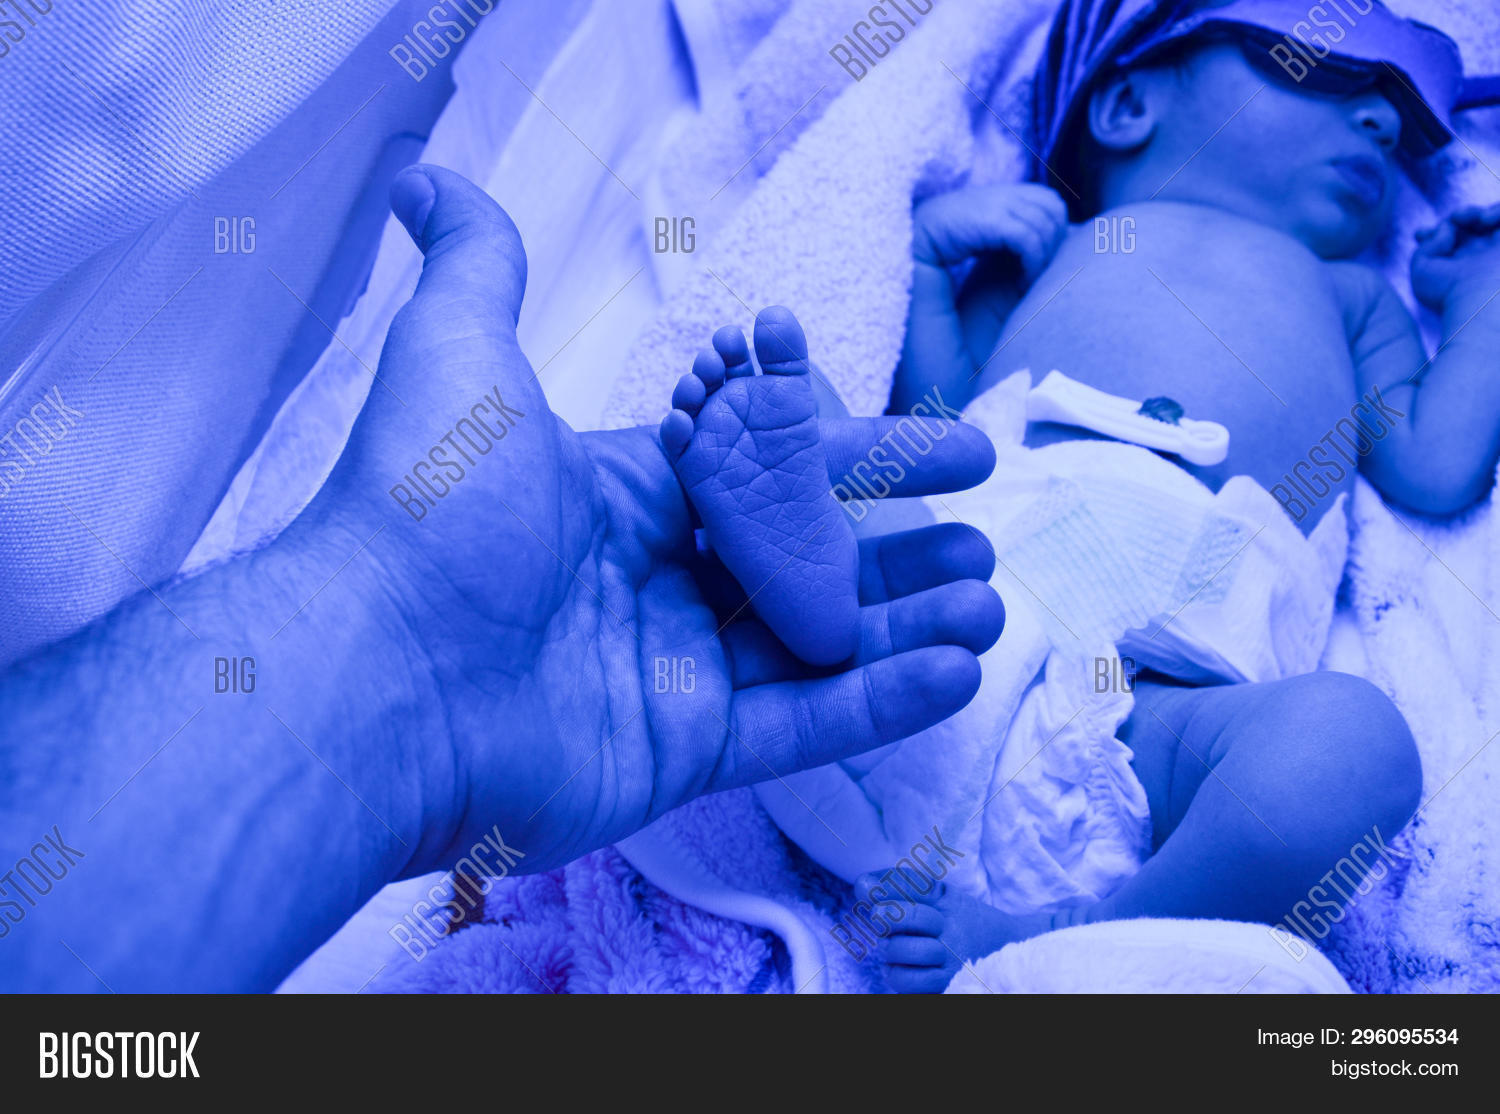 Newborn Babies Jaundice Treatment Dad Holds Legs Palms Image Photo Free Trial Bigstock